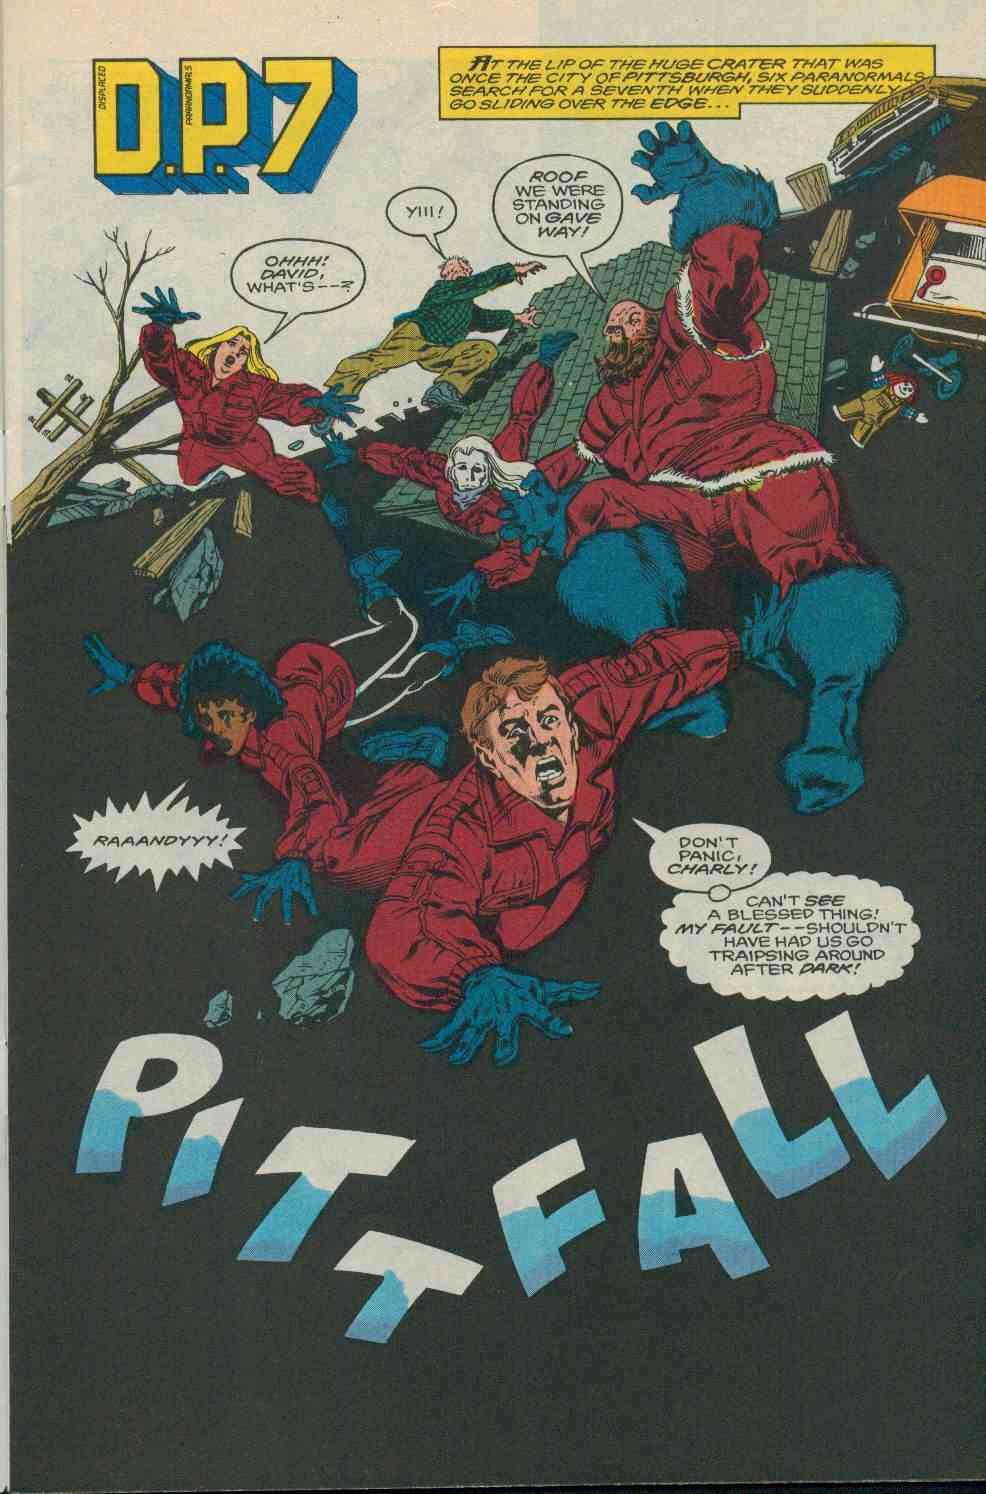 Read online DP7 comic -  Issue #19 - 2